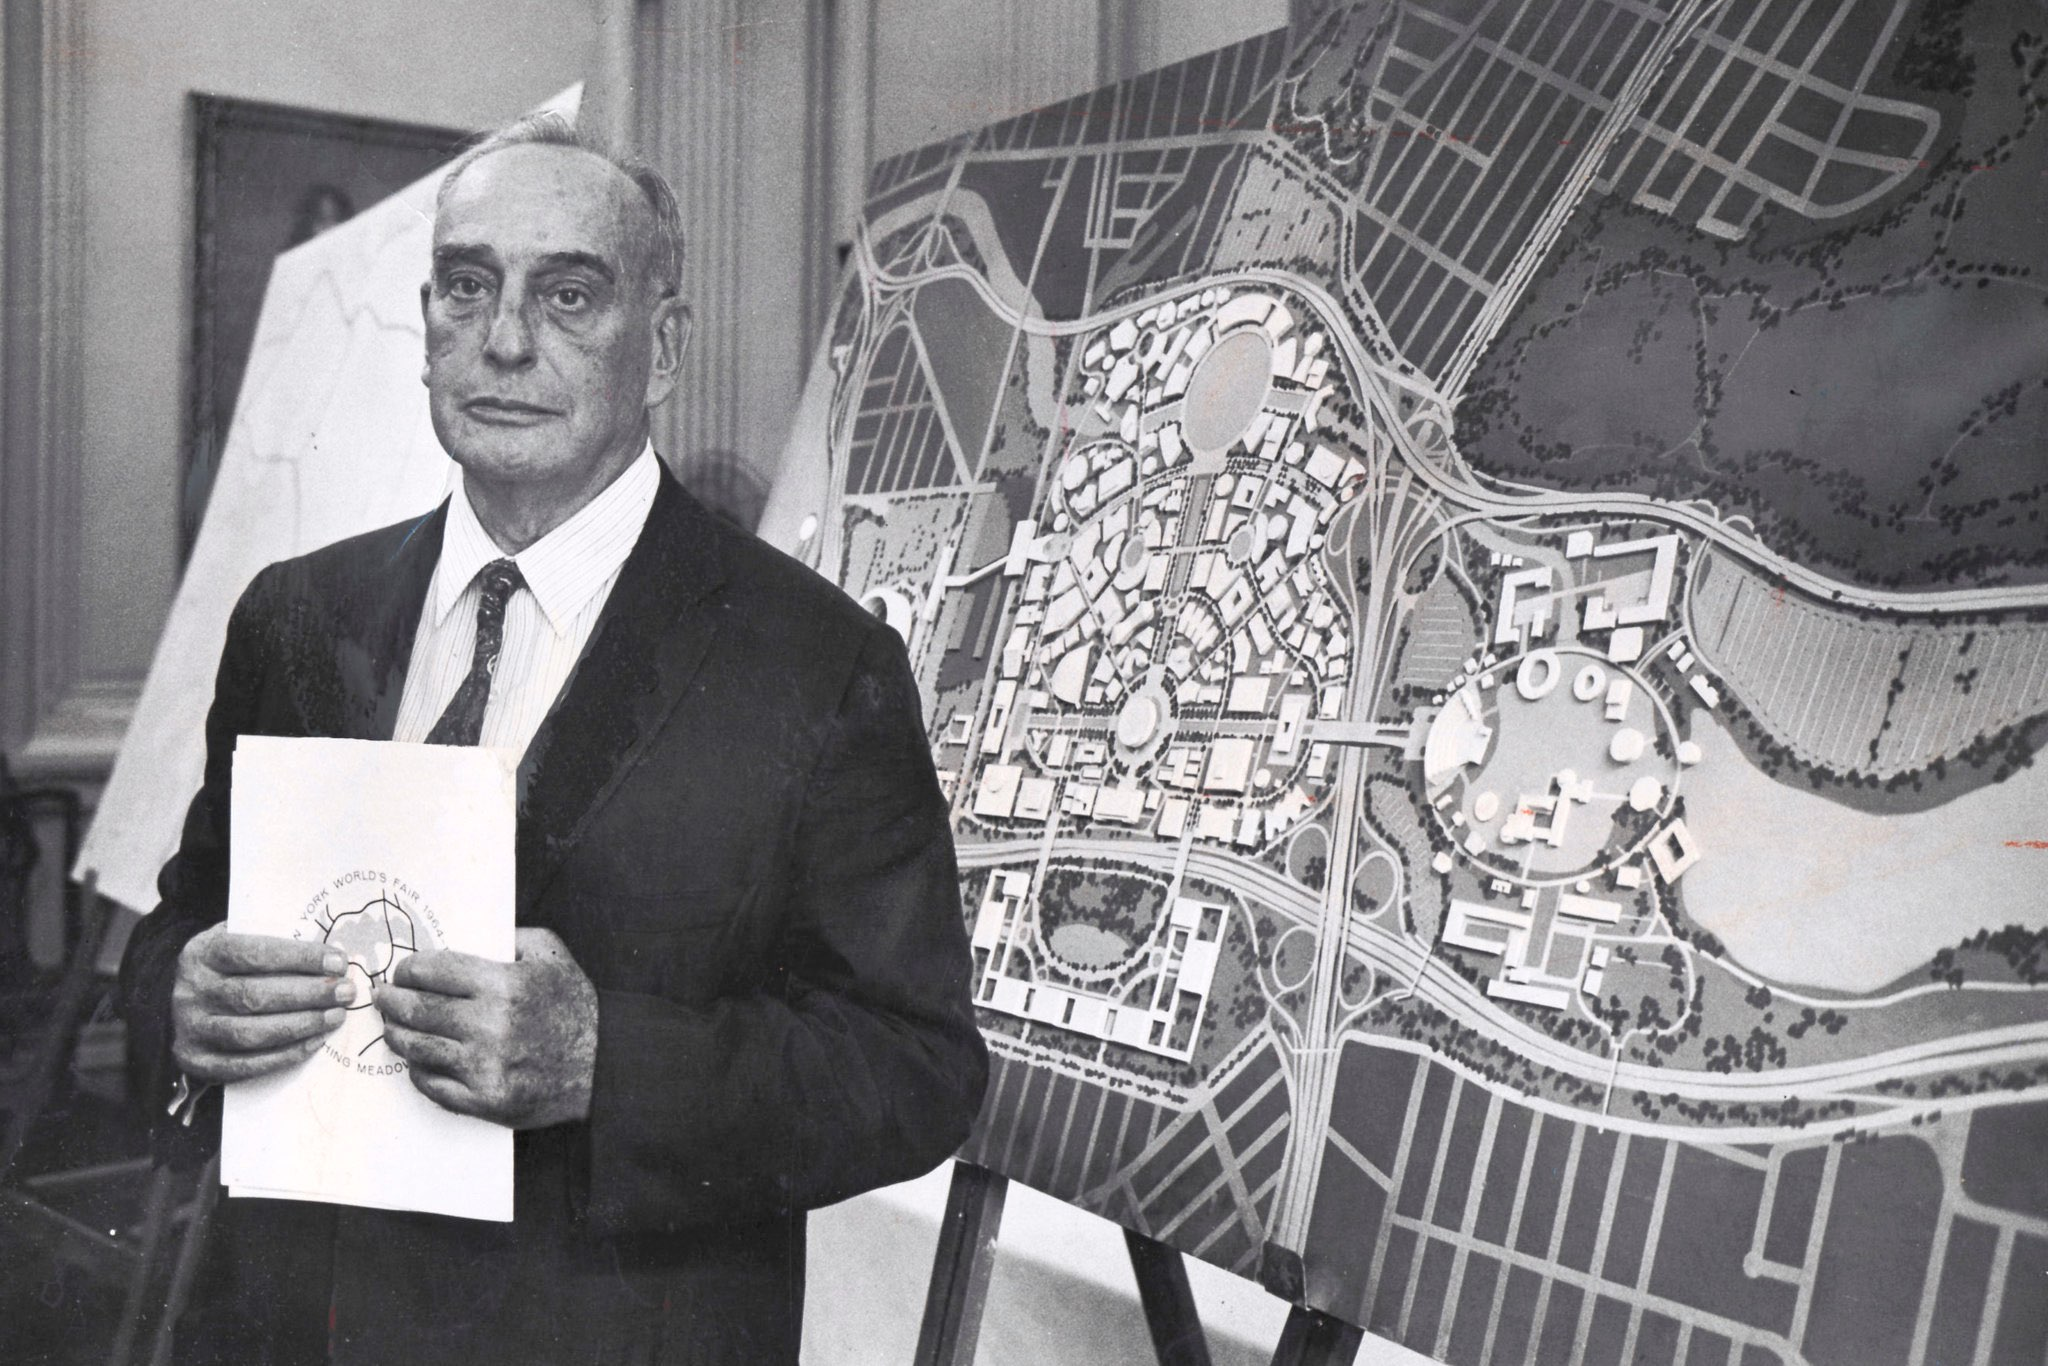 Robert Moses wears a dark suit and tie while holding a folder containing his plans for the New York World's Fair. Moses stands in front of a map of the park where the World's Fair will be held.